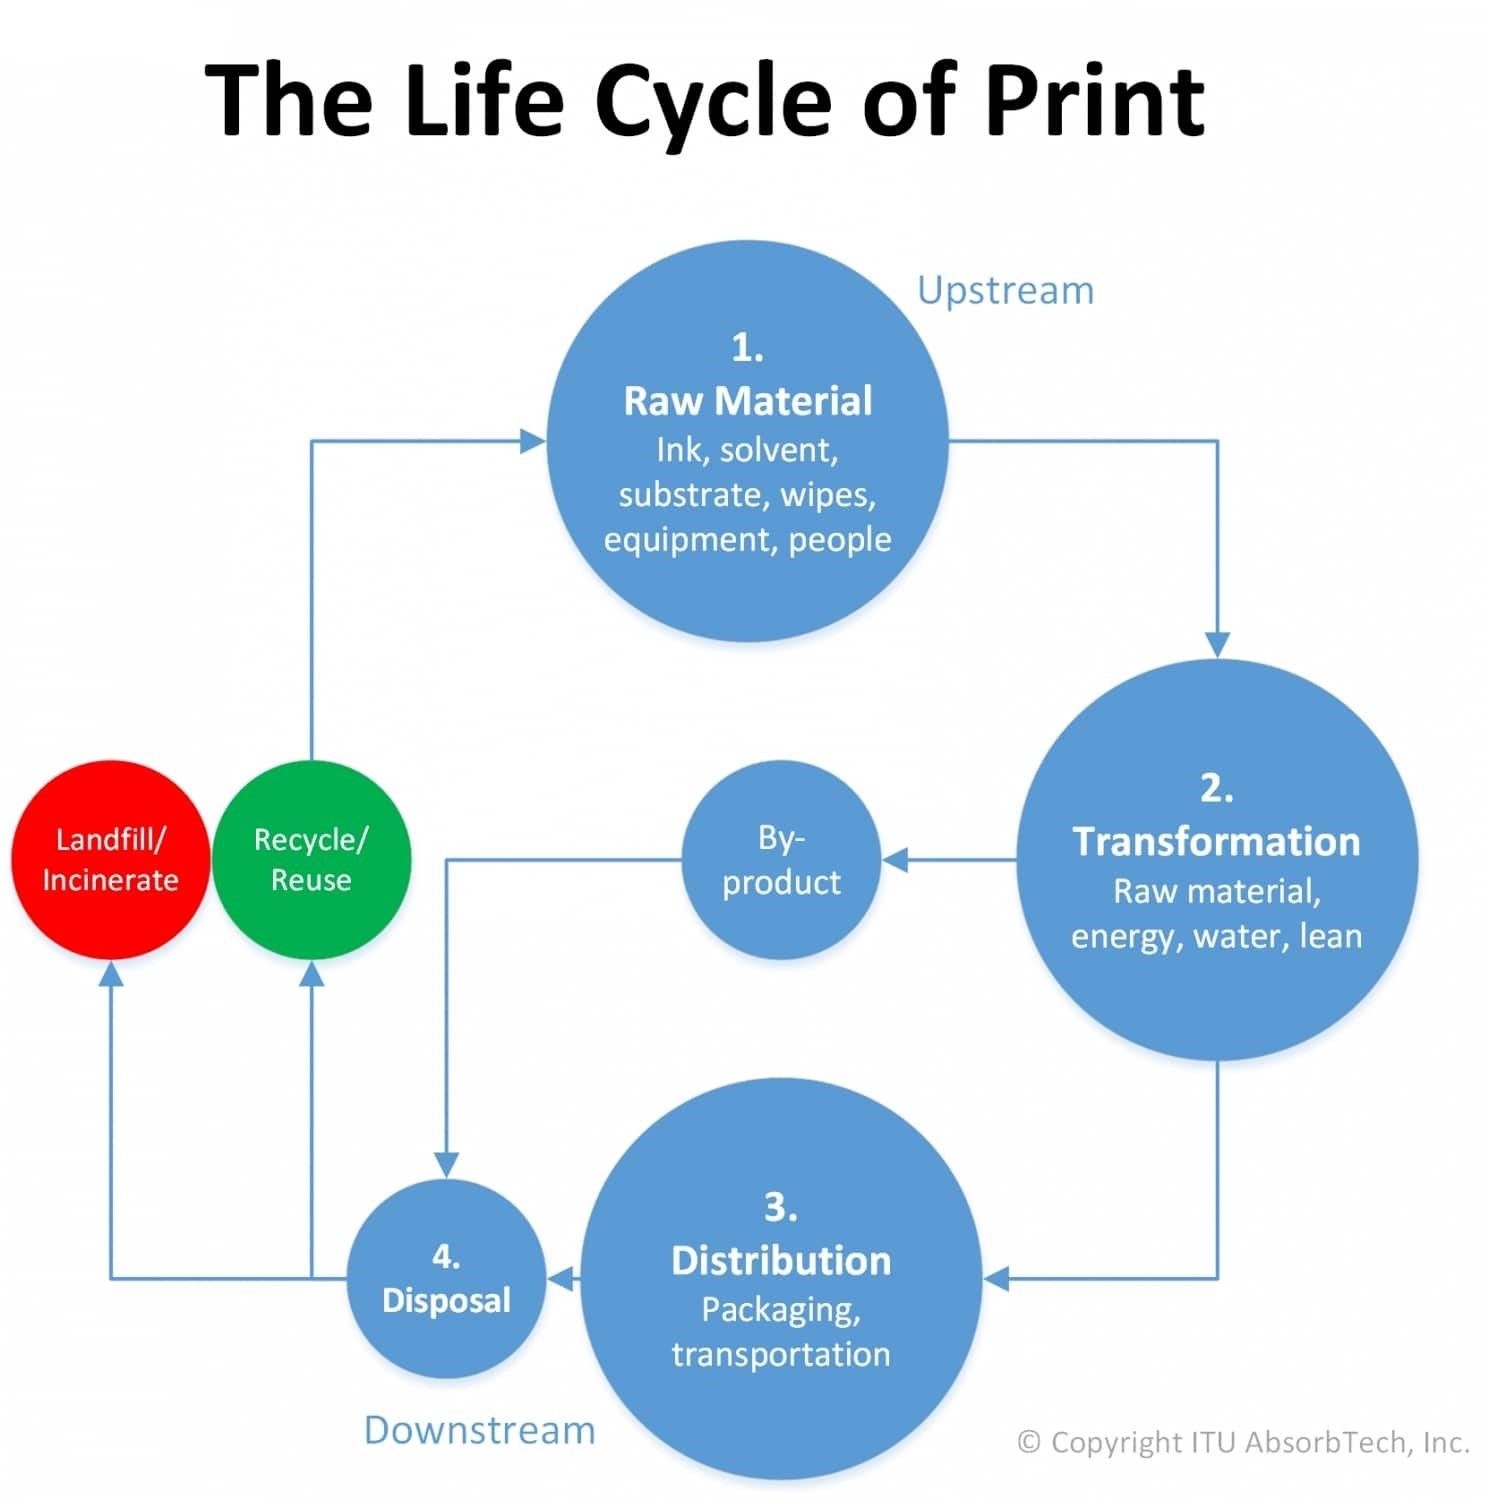 Demand for sustainable print technologies creates new business opportunities